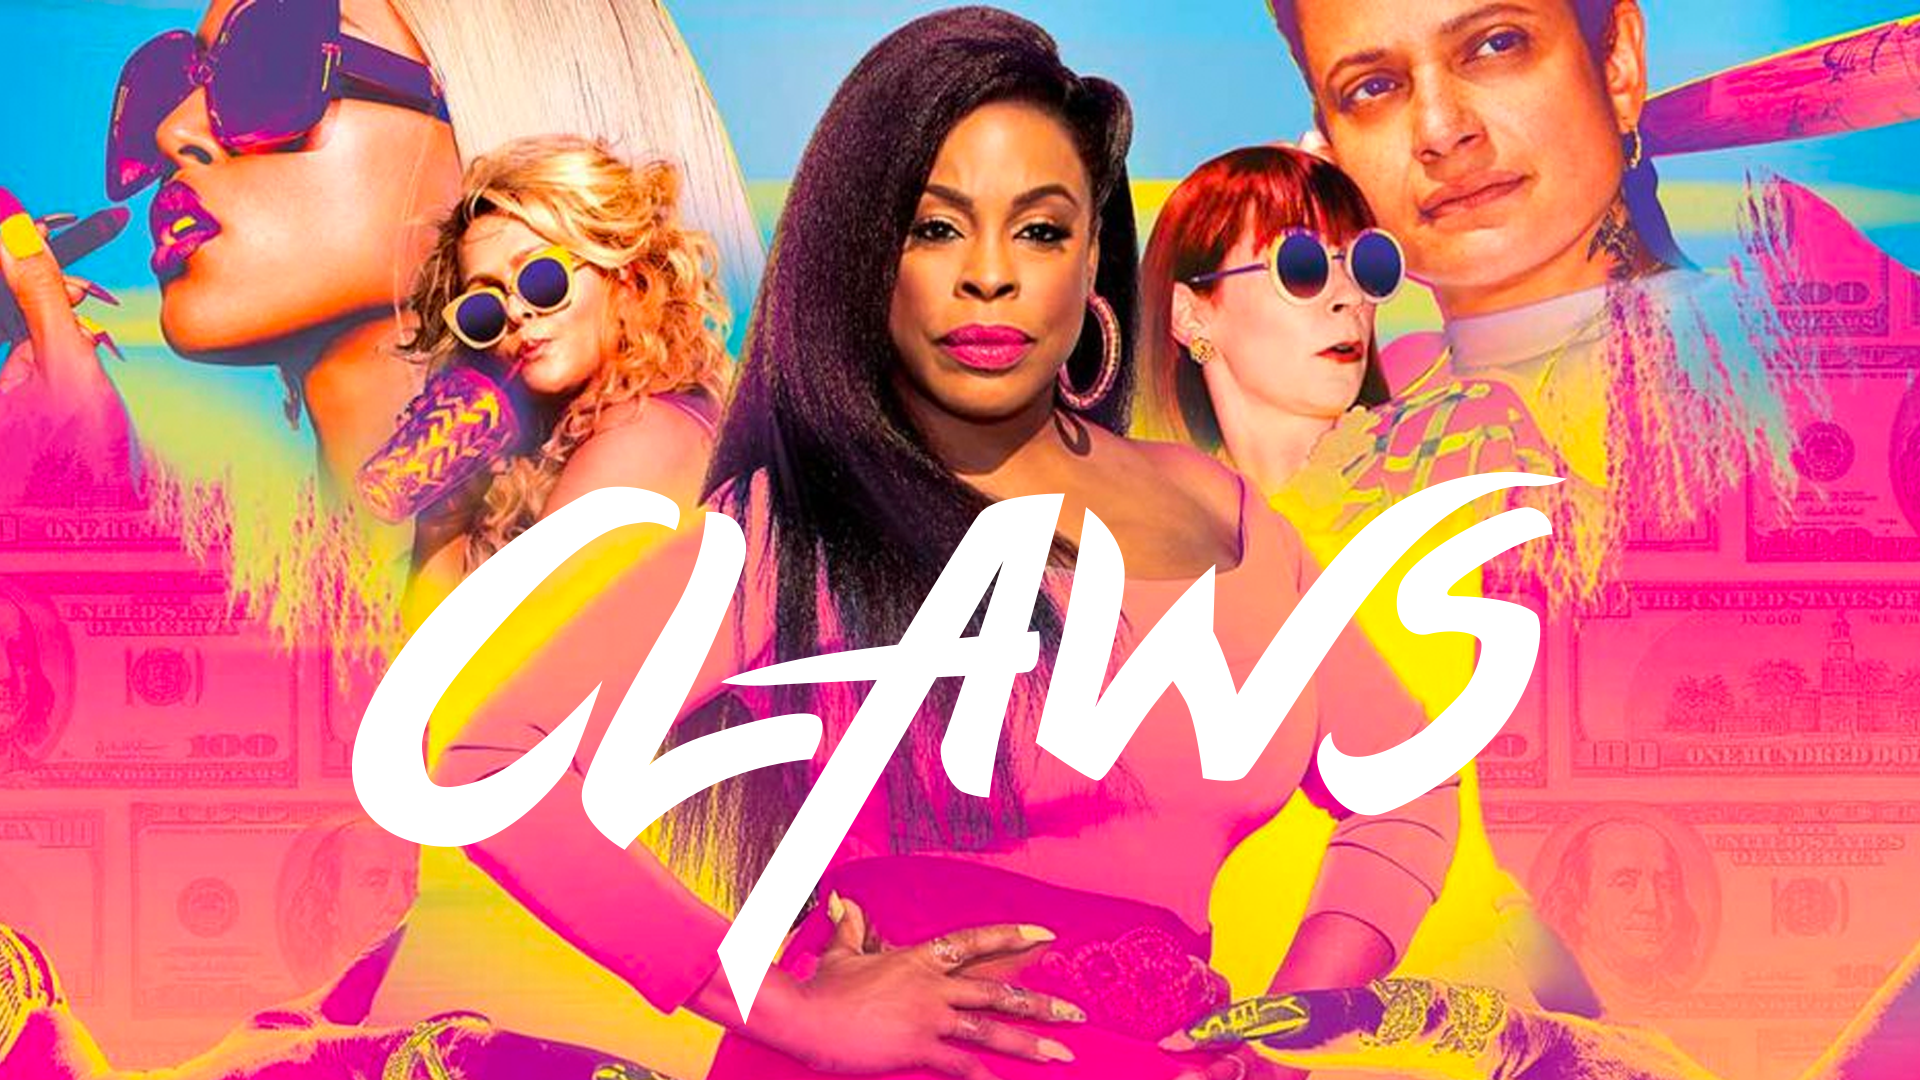 Claws_1920x1080.png